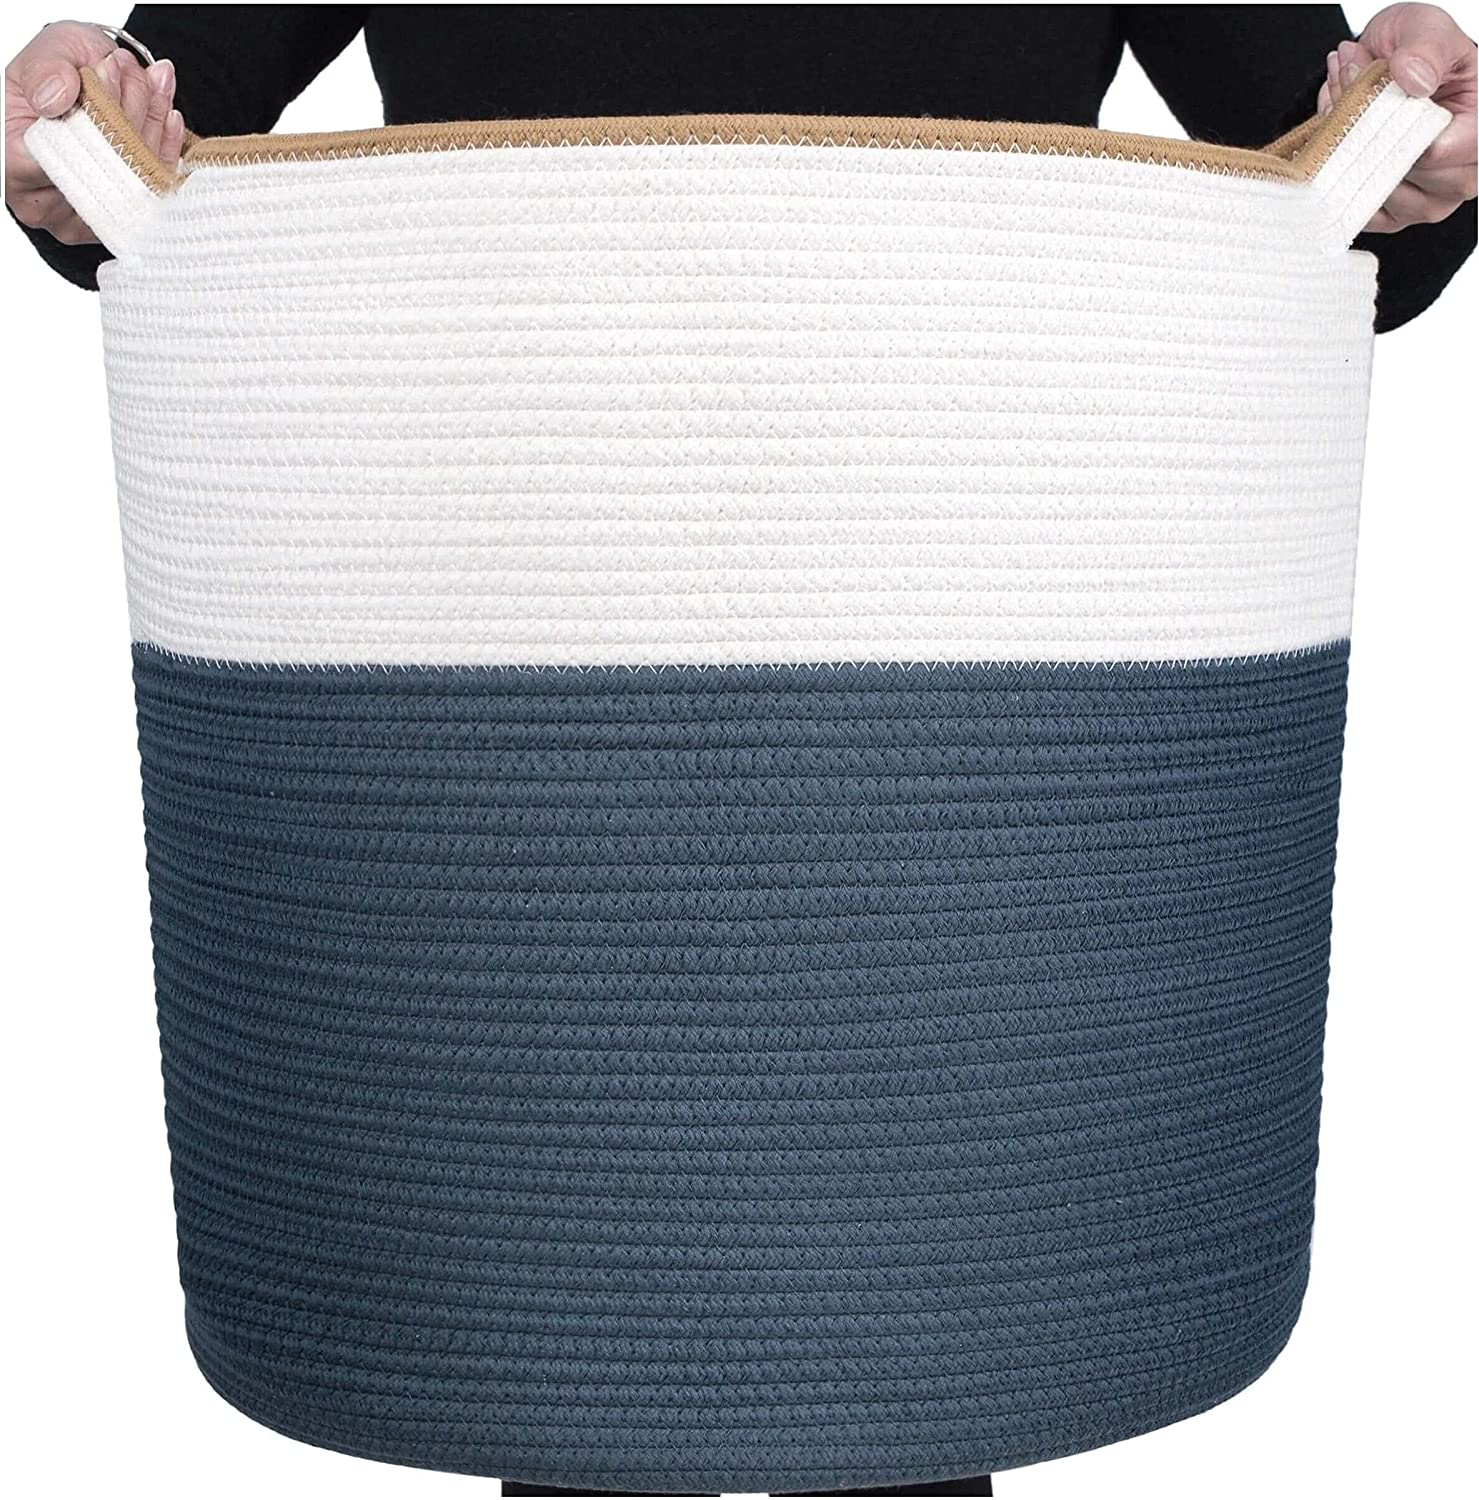 MINTWOOD Design Extra Large 20 x 18 Inches Decorative Woven Cotton Rope Basket, Tall Laundry Basket Hamper, Blanket Basket for Living Room, Round Storage Baskets for Pillows, Towels, Prussian Blue